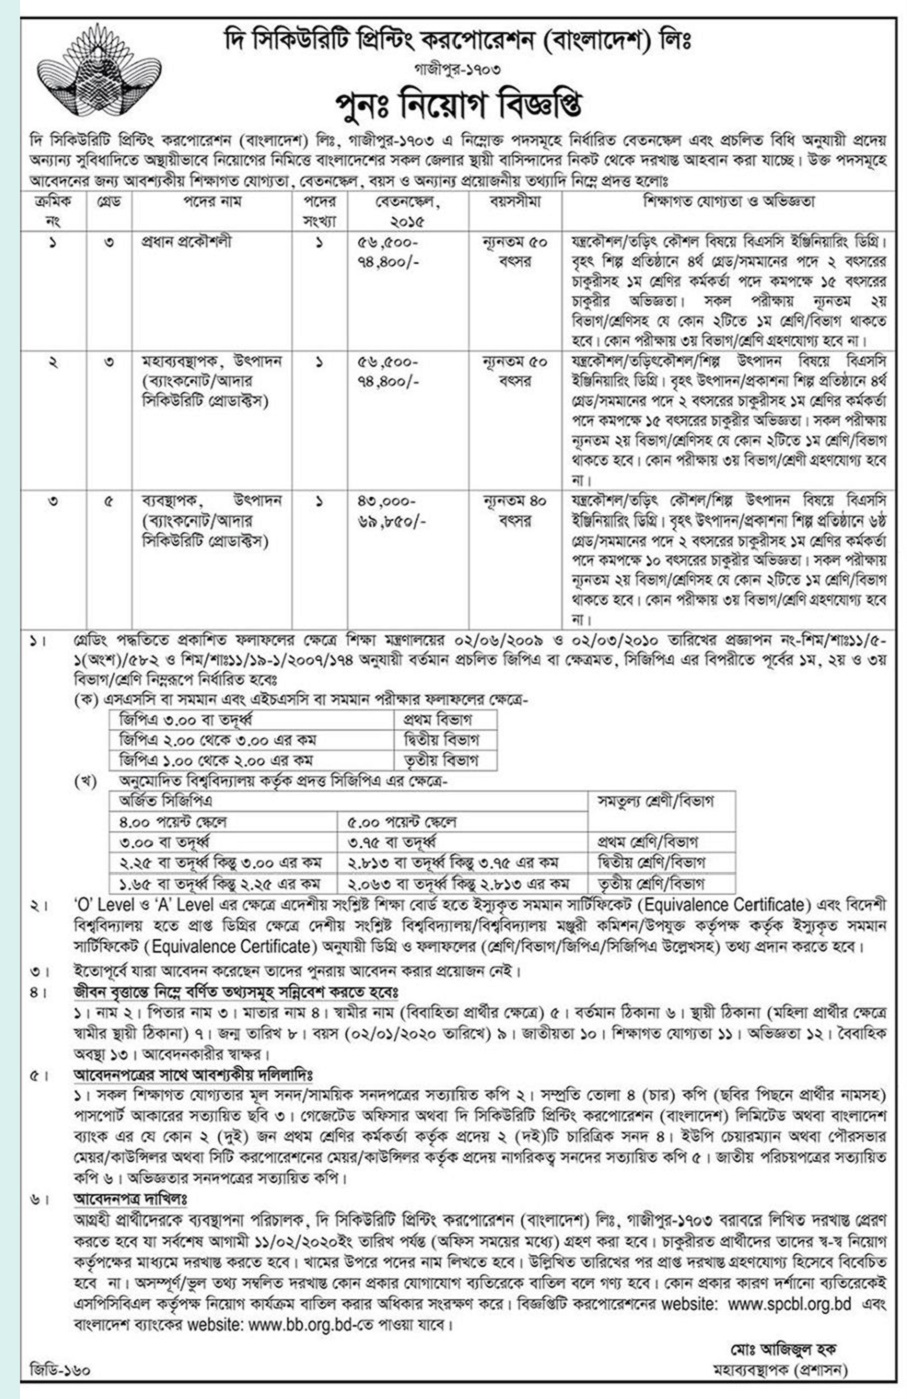 The Security Printing Corporation (Bangladesh) Ltd Job Circular 2020